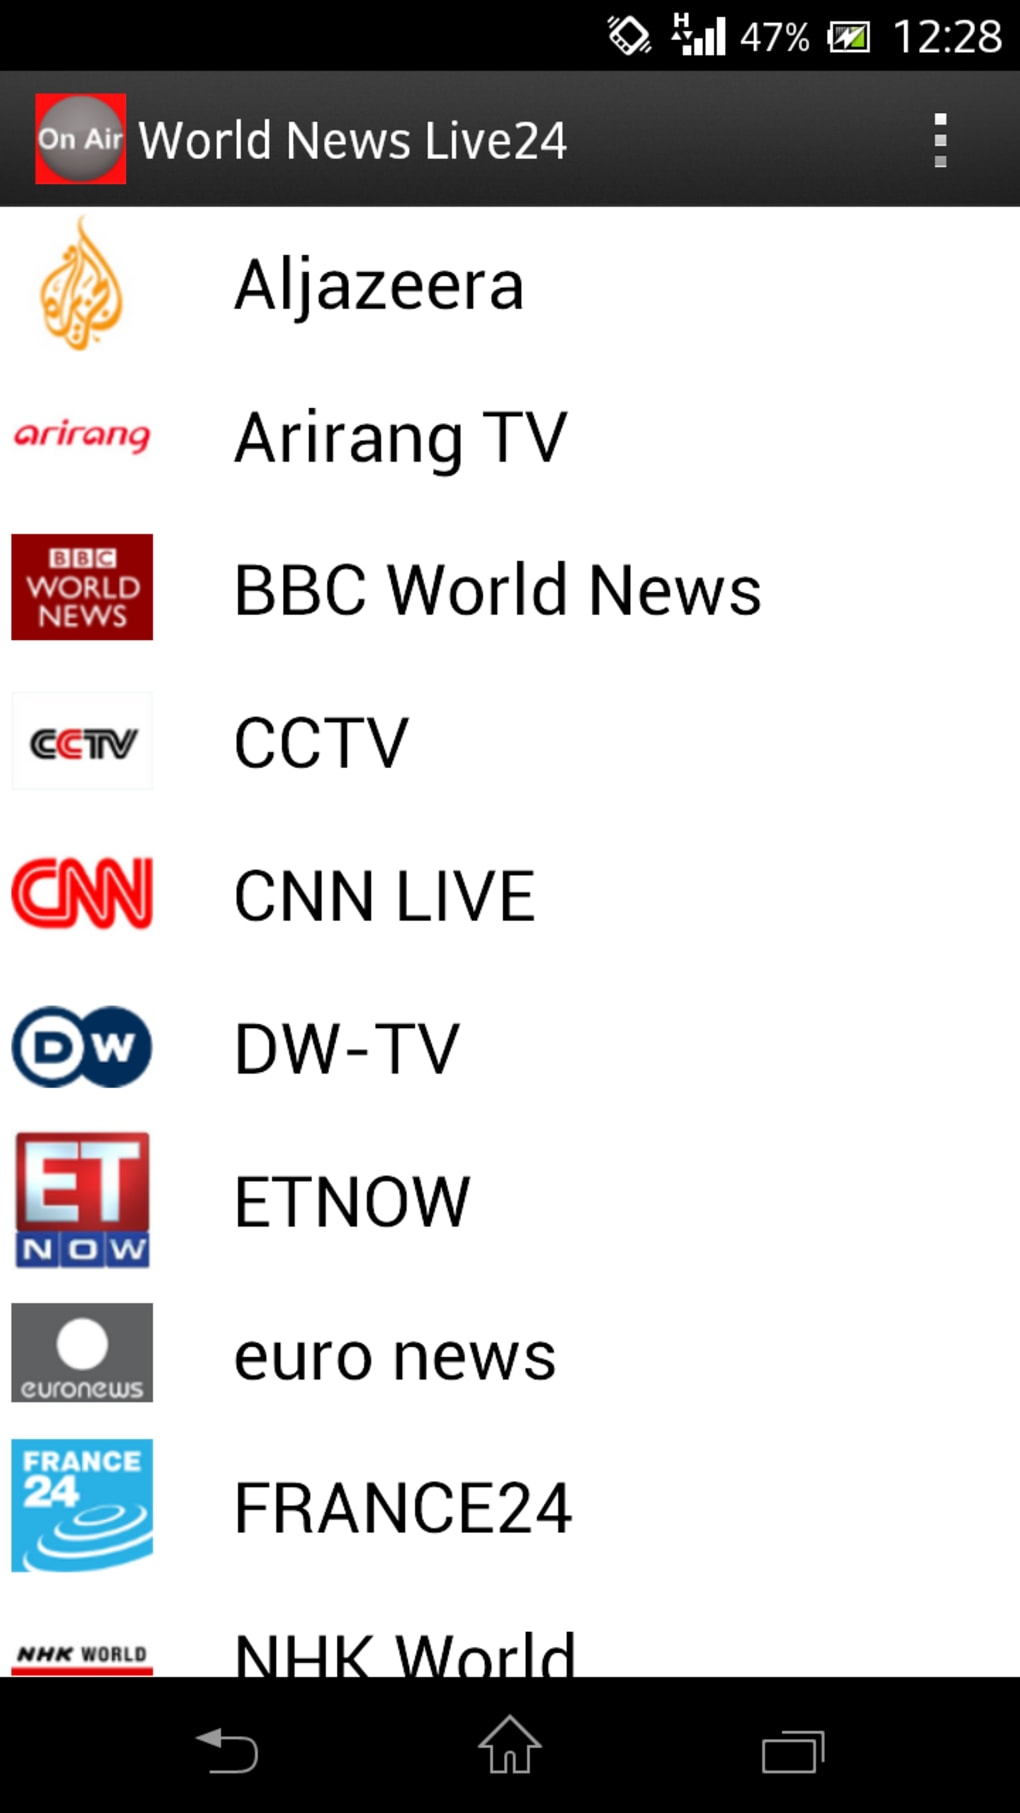 world news live24 for android ダウンロード